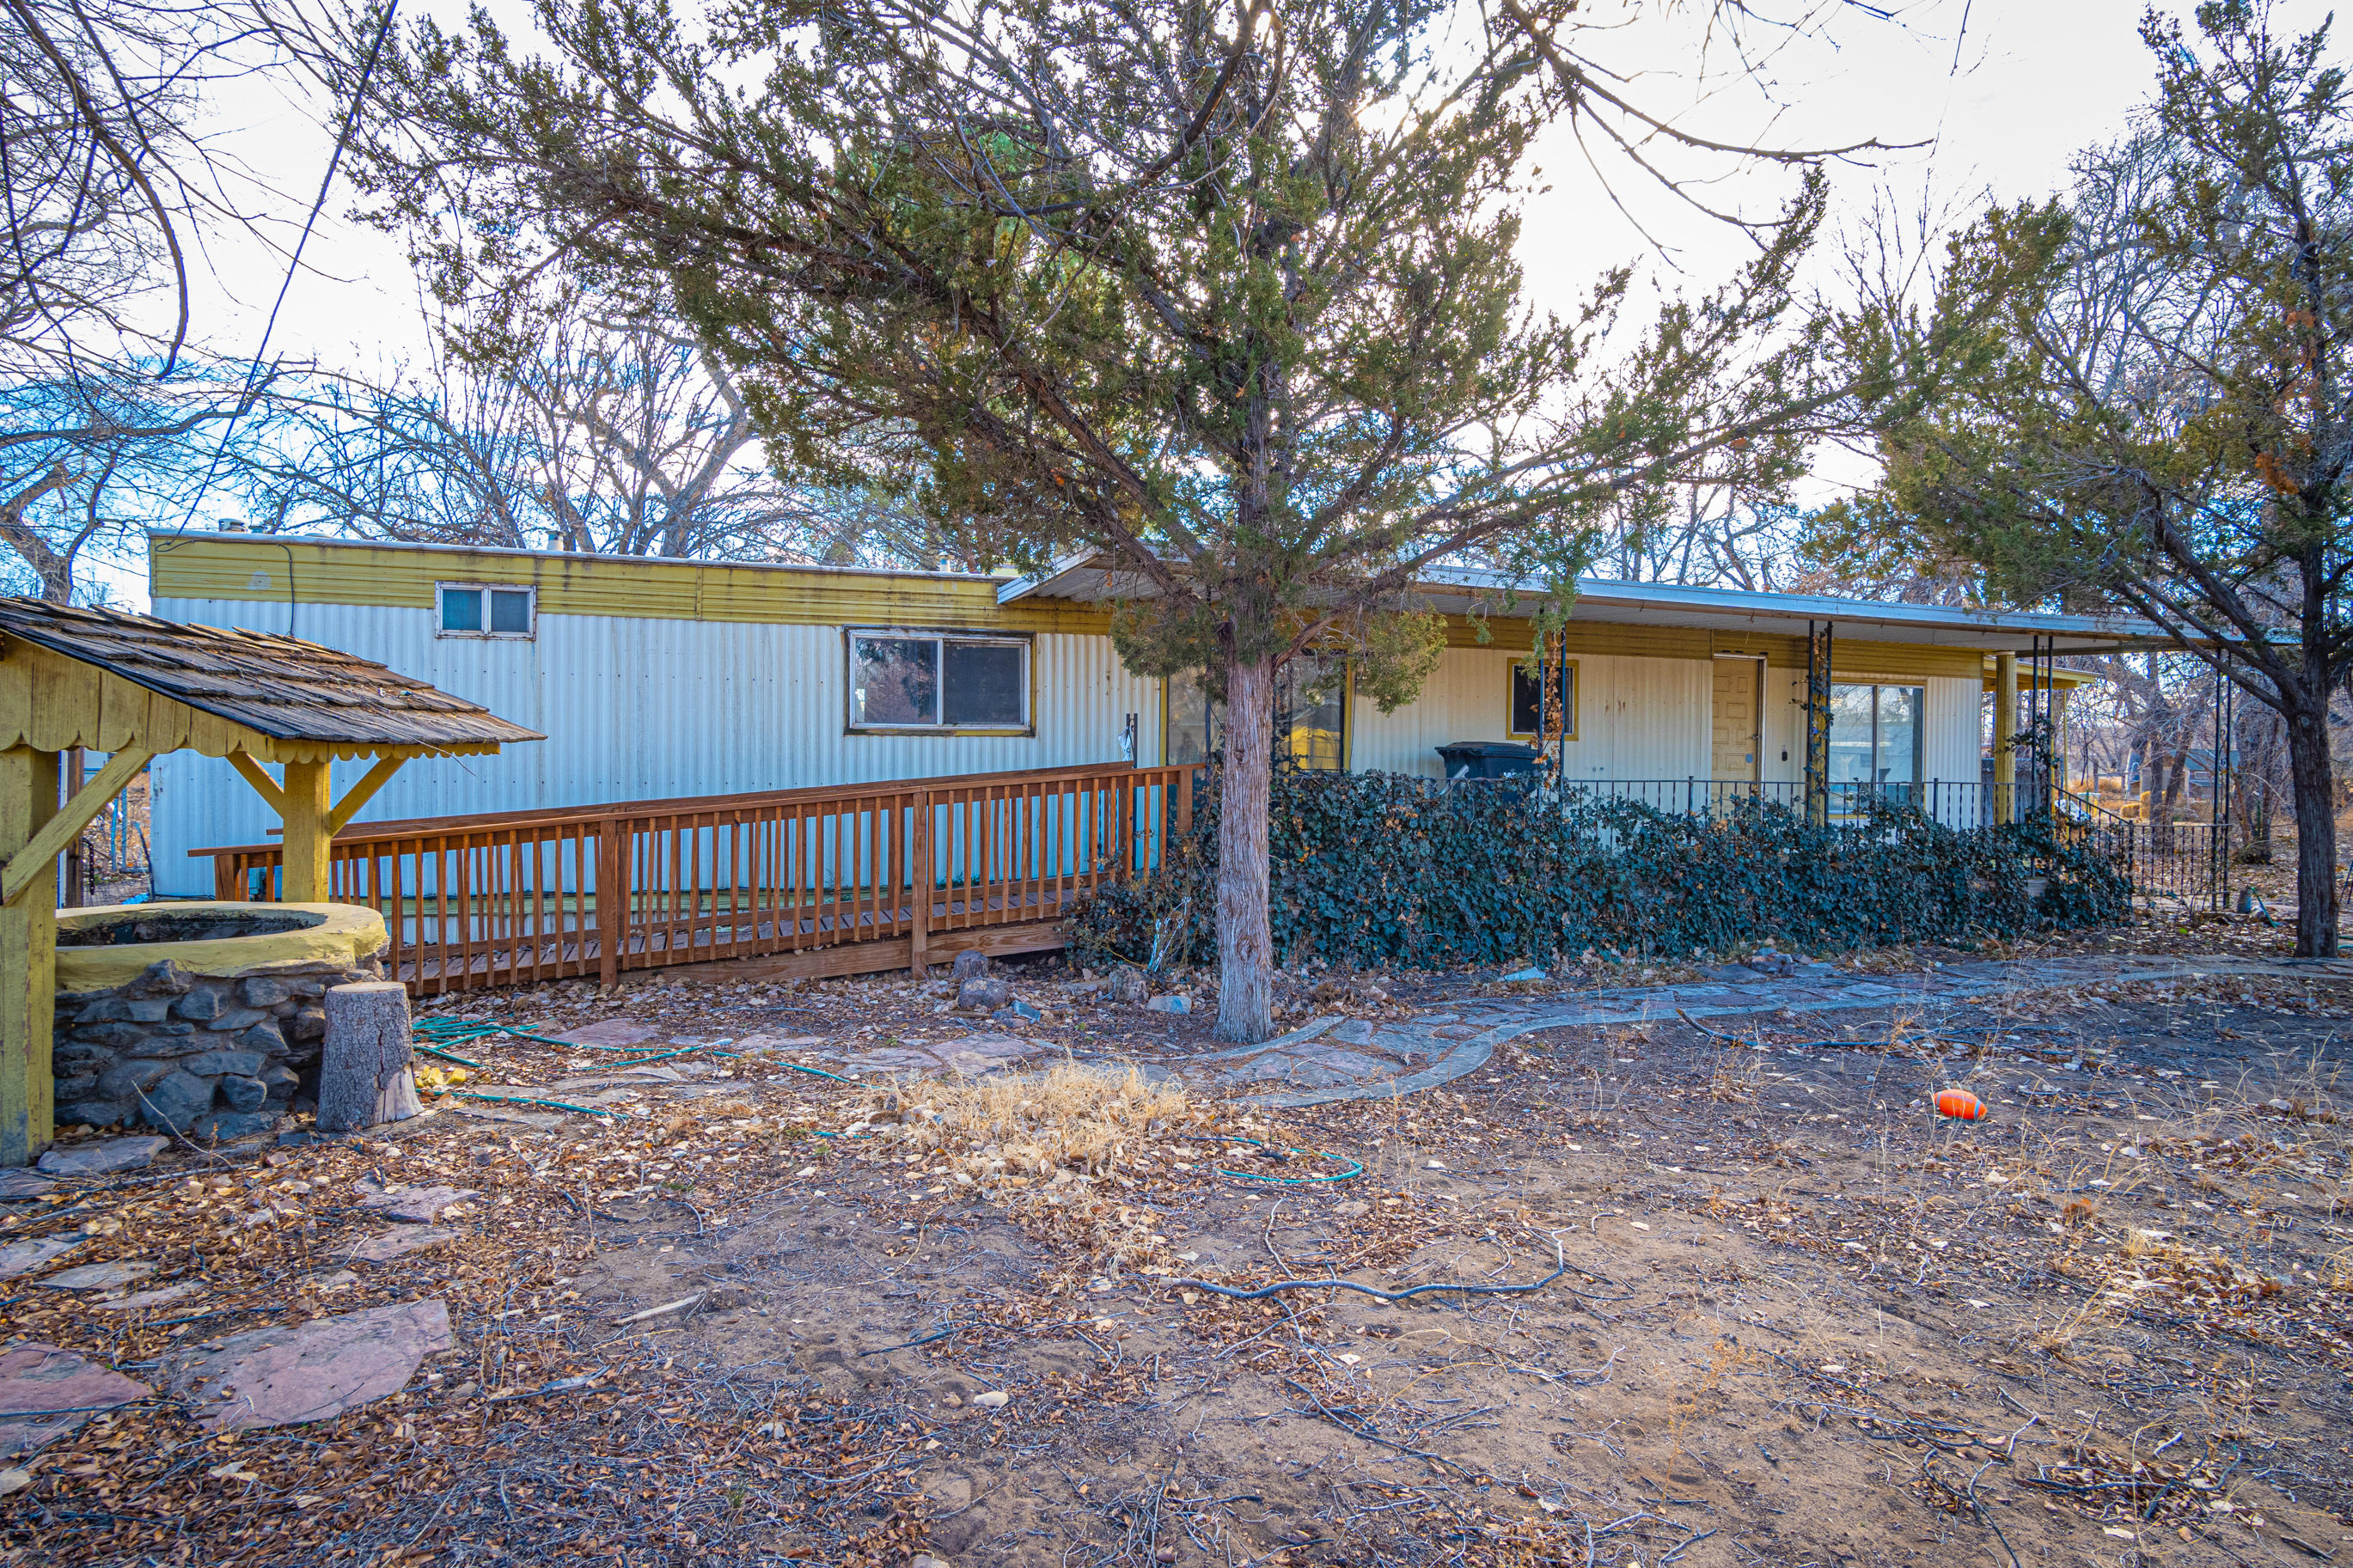 Great opportunity for the investor!  This 1971 Santa Maria Manufactured Home was built with 2x4 construction.  Now it just needs someone to come in and make it grand again.  It's a blank canvas and sits on a .50 acre lot.  Three bedrooms, two bathrooms, two spacious living spaces with a formal dining room.  The living room addition walks out onto the deck overlooking the backyard.  In the backyard you'll find a couple out buildings for storage, garden shed or a ''he/she shed''.  The front yard has flagstone landscaping under the tall grass.  Don't miss out on this opportunity, schedule your appointment to preview today!